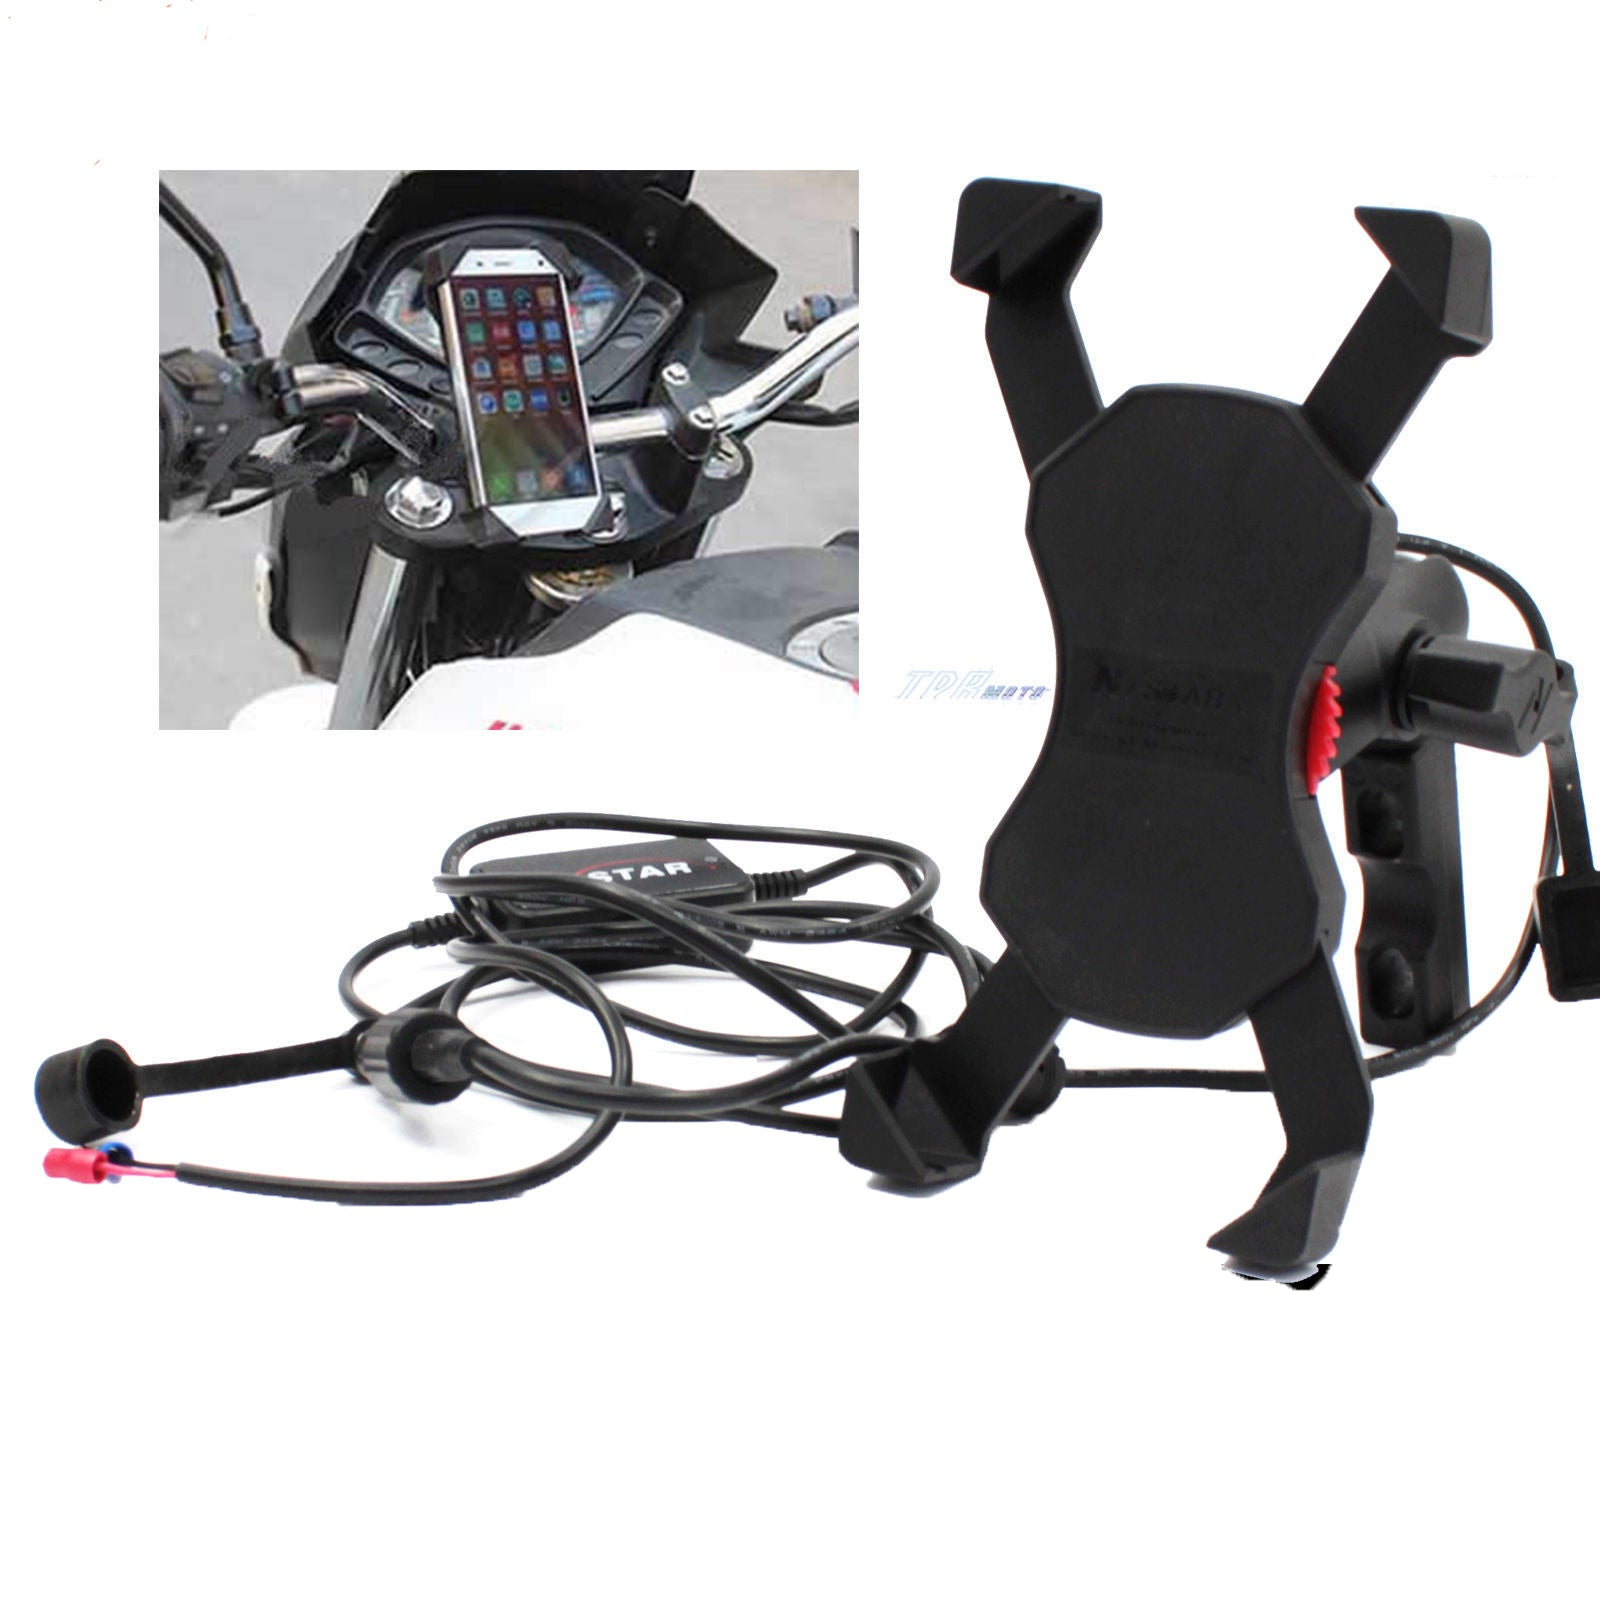 X-Bracket Motorcycle Bike Lever Mount Cellphone Holder USB Charger Cell Phone